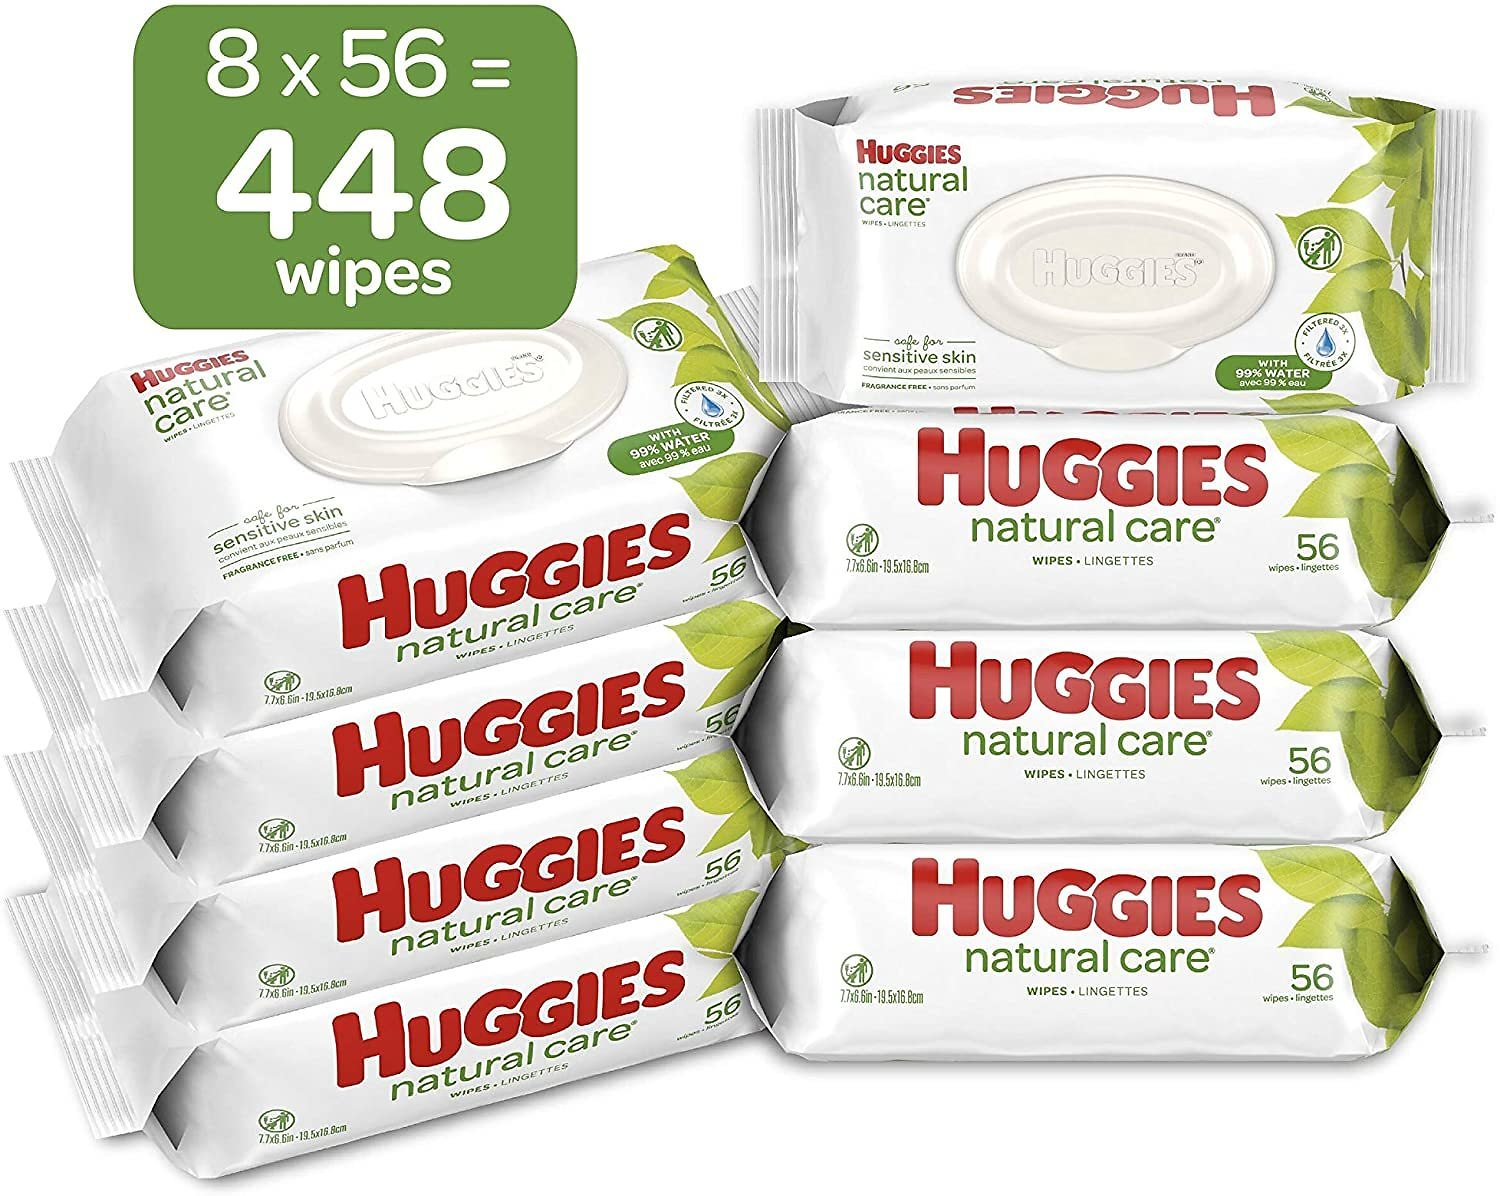 HUGGIES Natural Care Unscented Baby Wipes, Sensitive, 8 Flip-top Packs, 448 Count Total